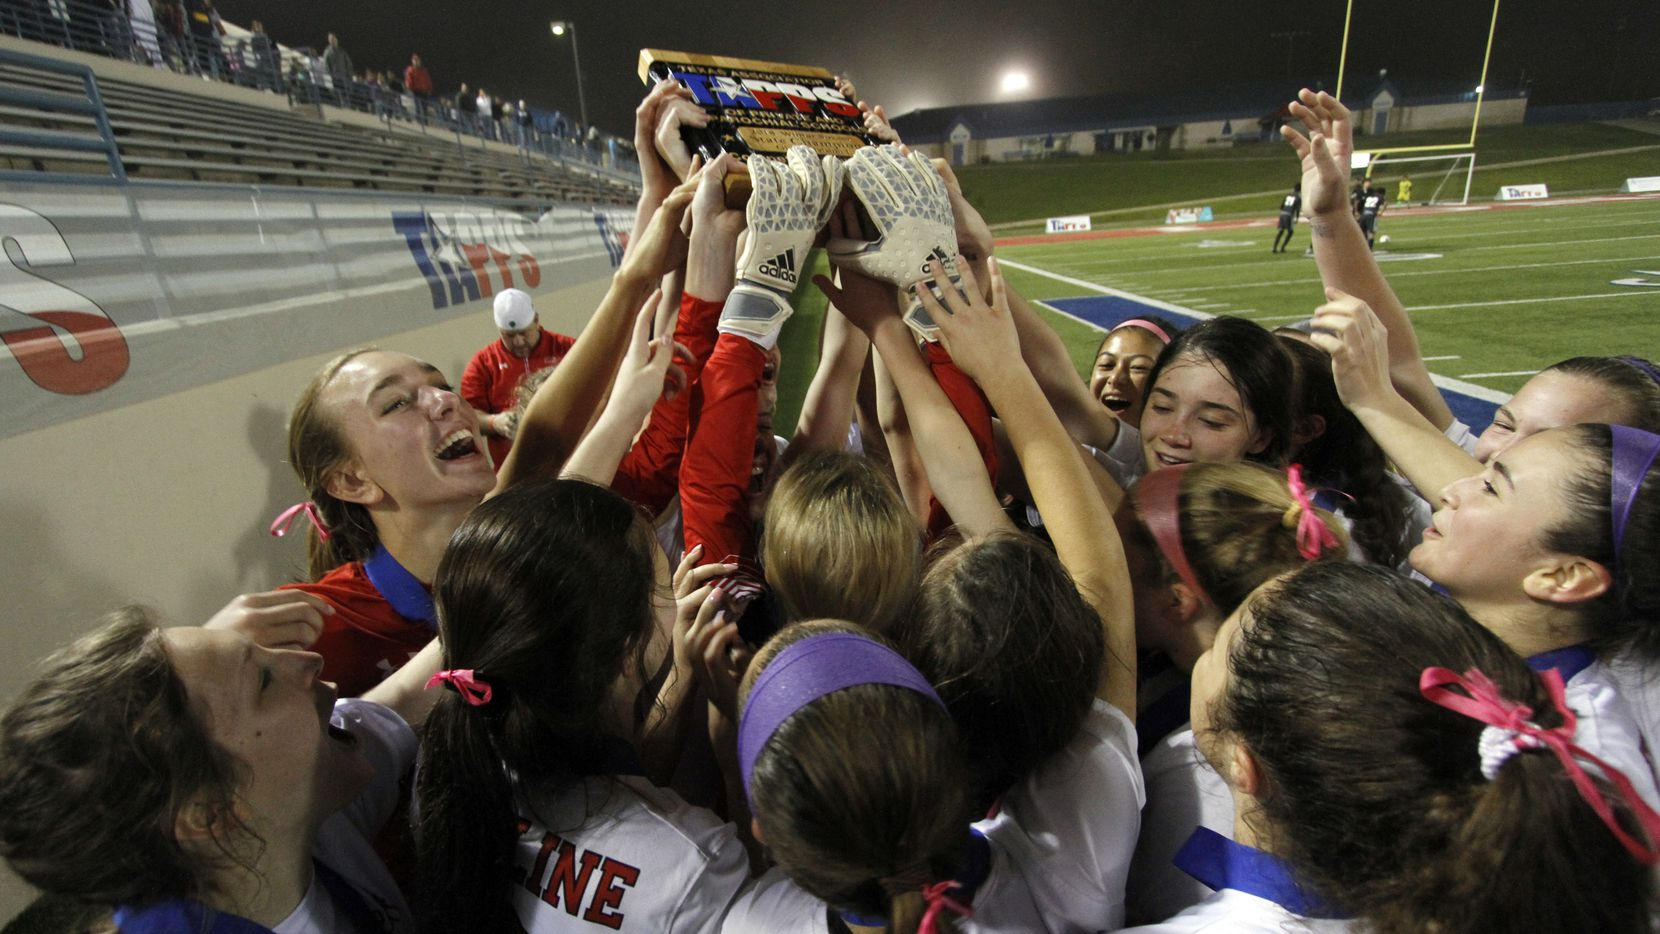 File photo, 2018: Ursuline players stretch to reach the state championship trophy they were awarded following their 2-0 victory over John Paul ll. The two teams played their TAPPS Division 1 girls state soccer championship game at Waco ISD Stadium.